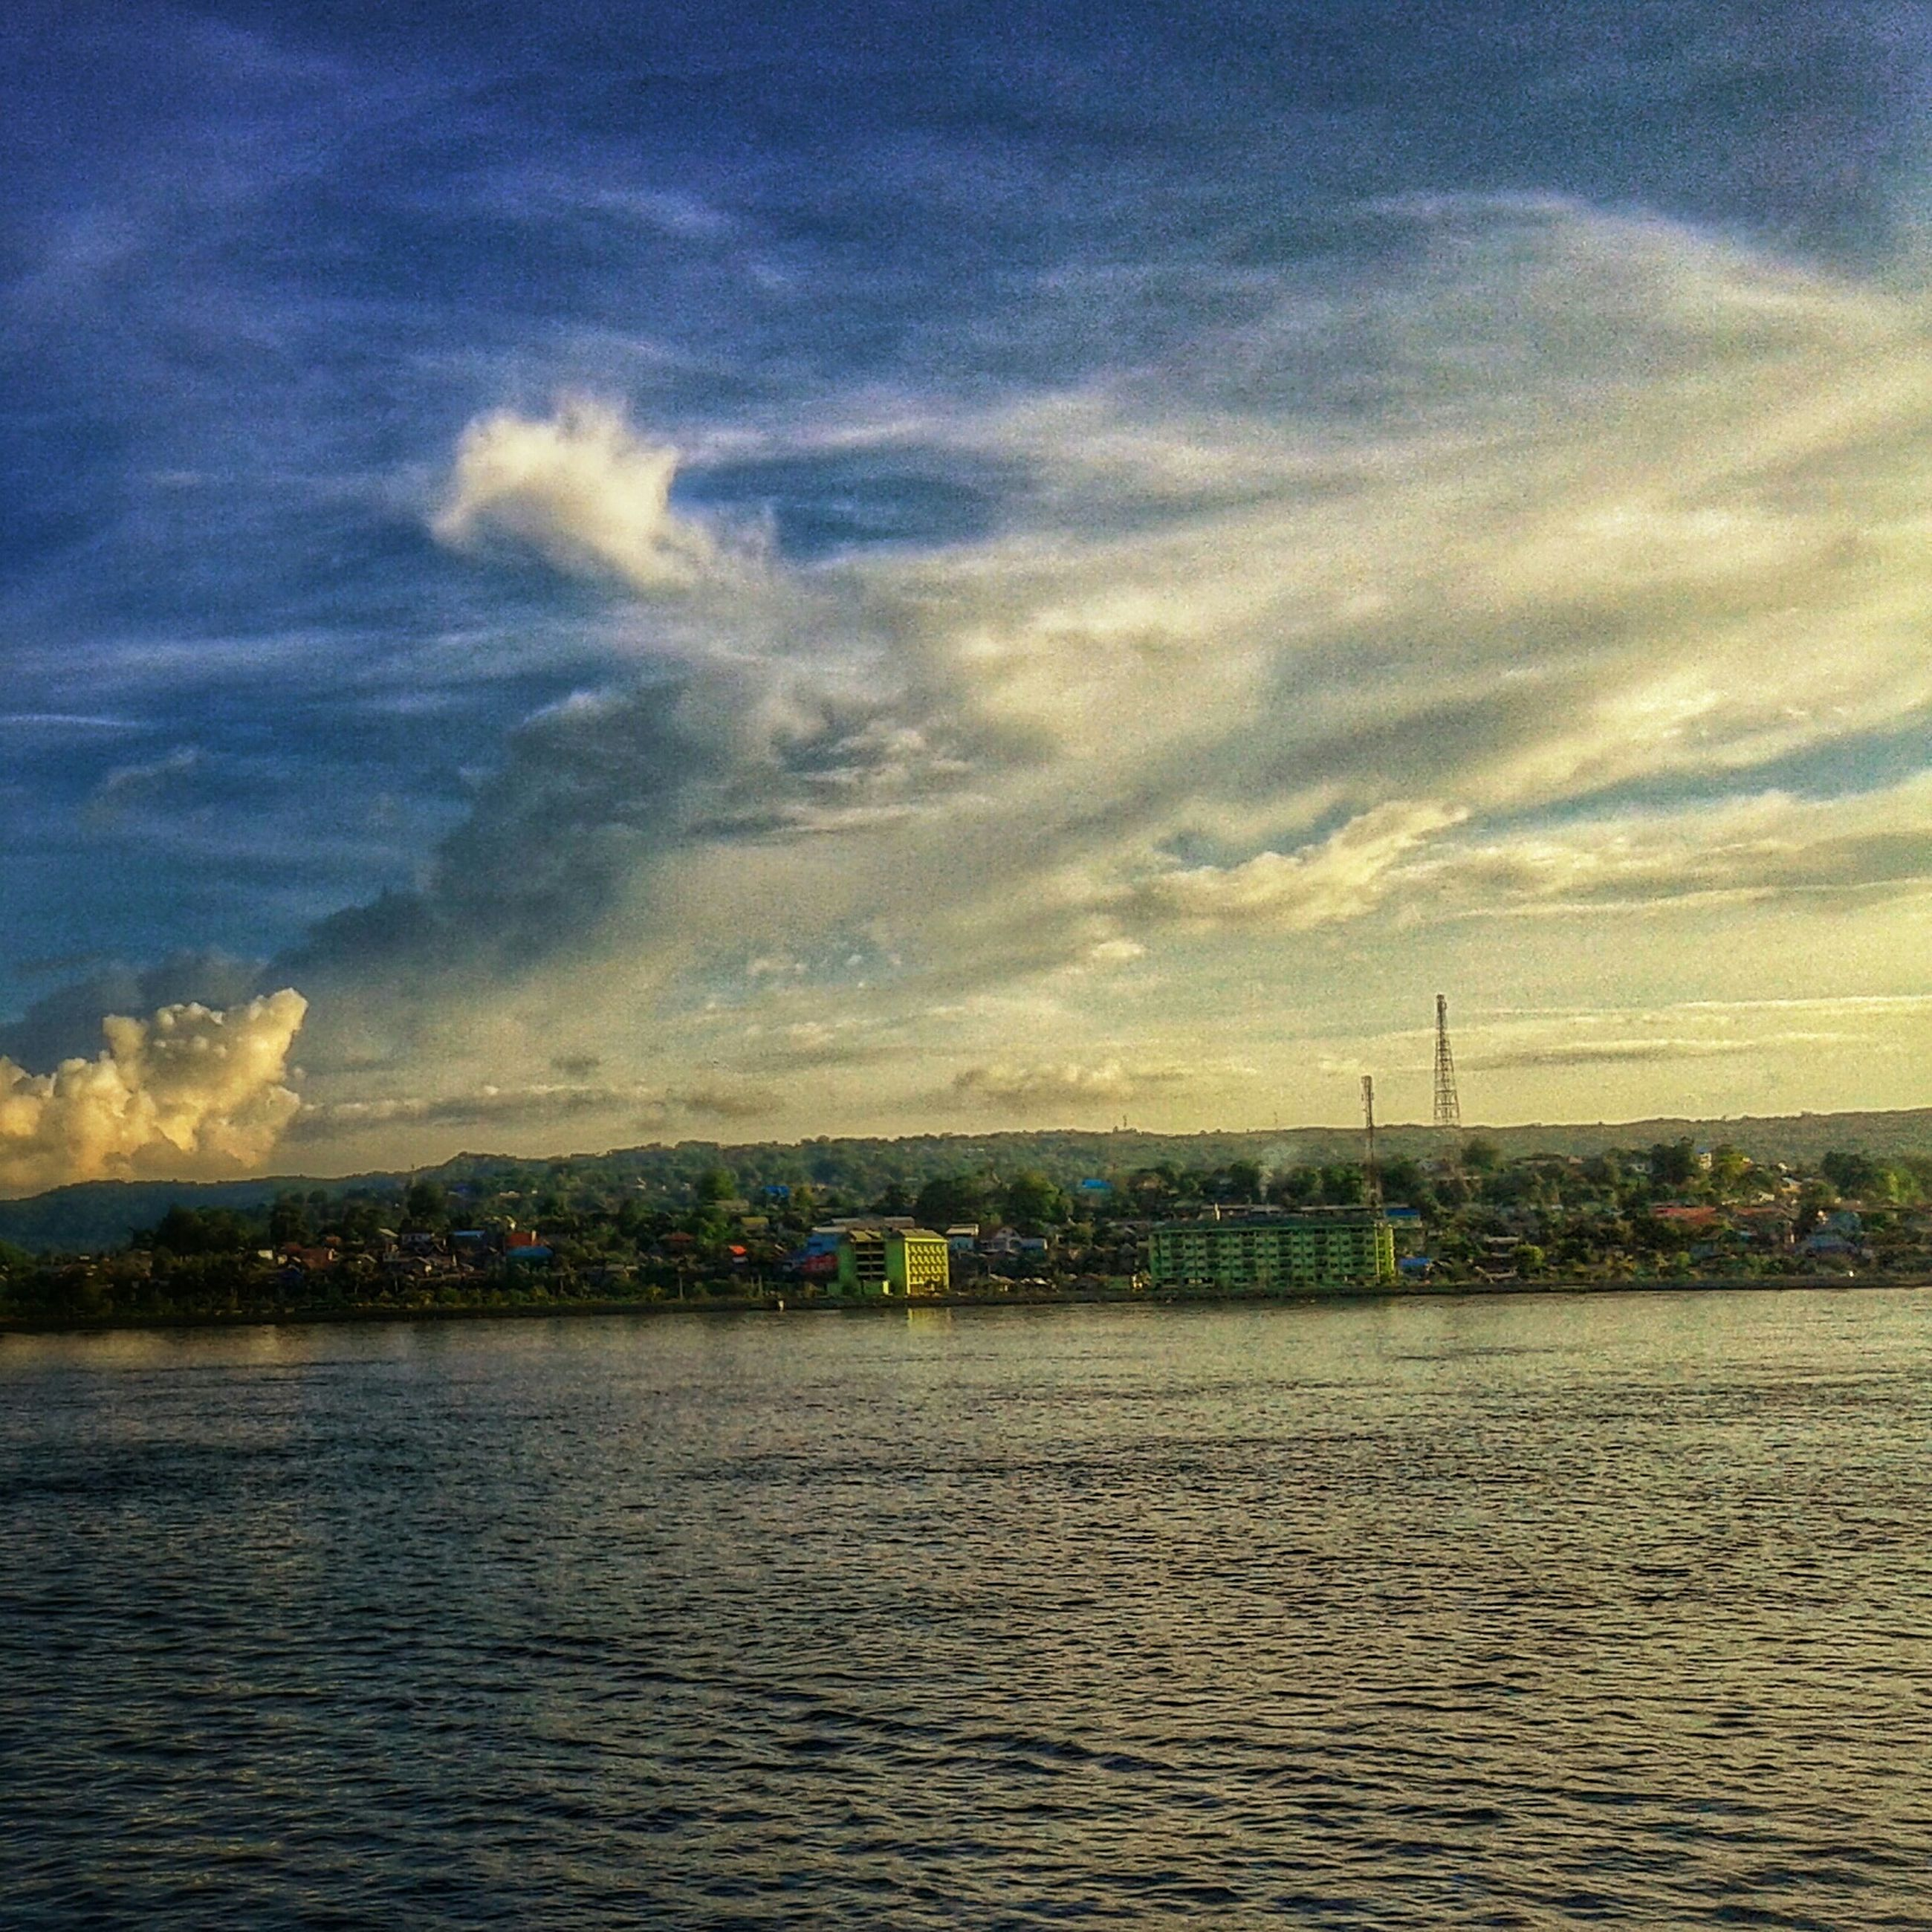 waterfront, water, sky, cloud - sky, scenics, rippled, tranquility, river, tranquil scene, sunset, cloud, sea, beauty in nature, nature, built structure, cloudy, architecture, building exterior, outdoors, idyllic